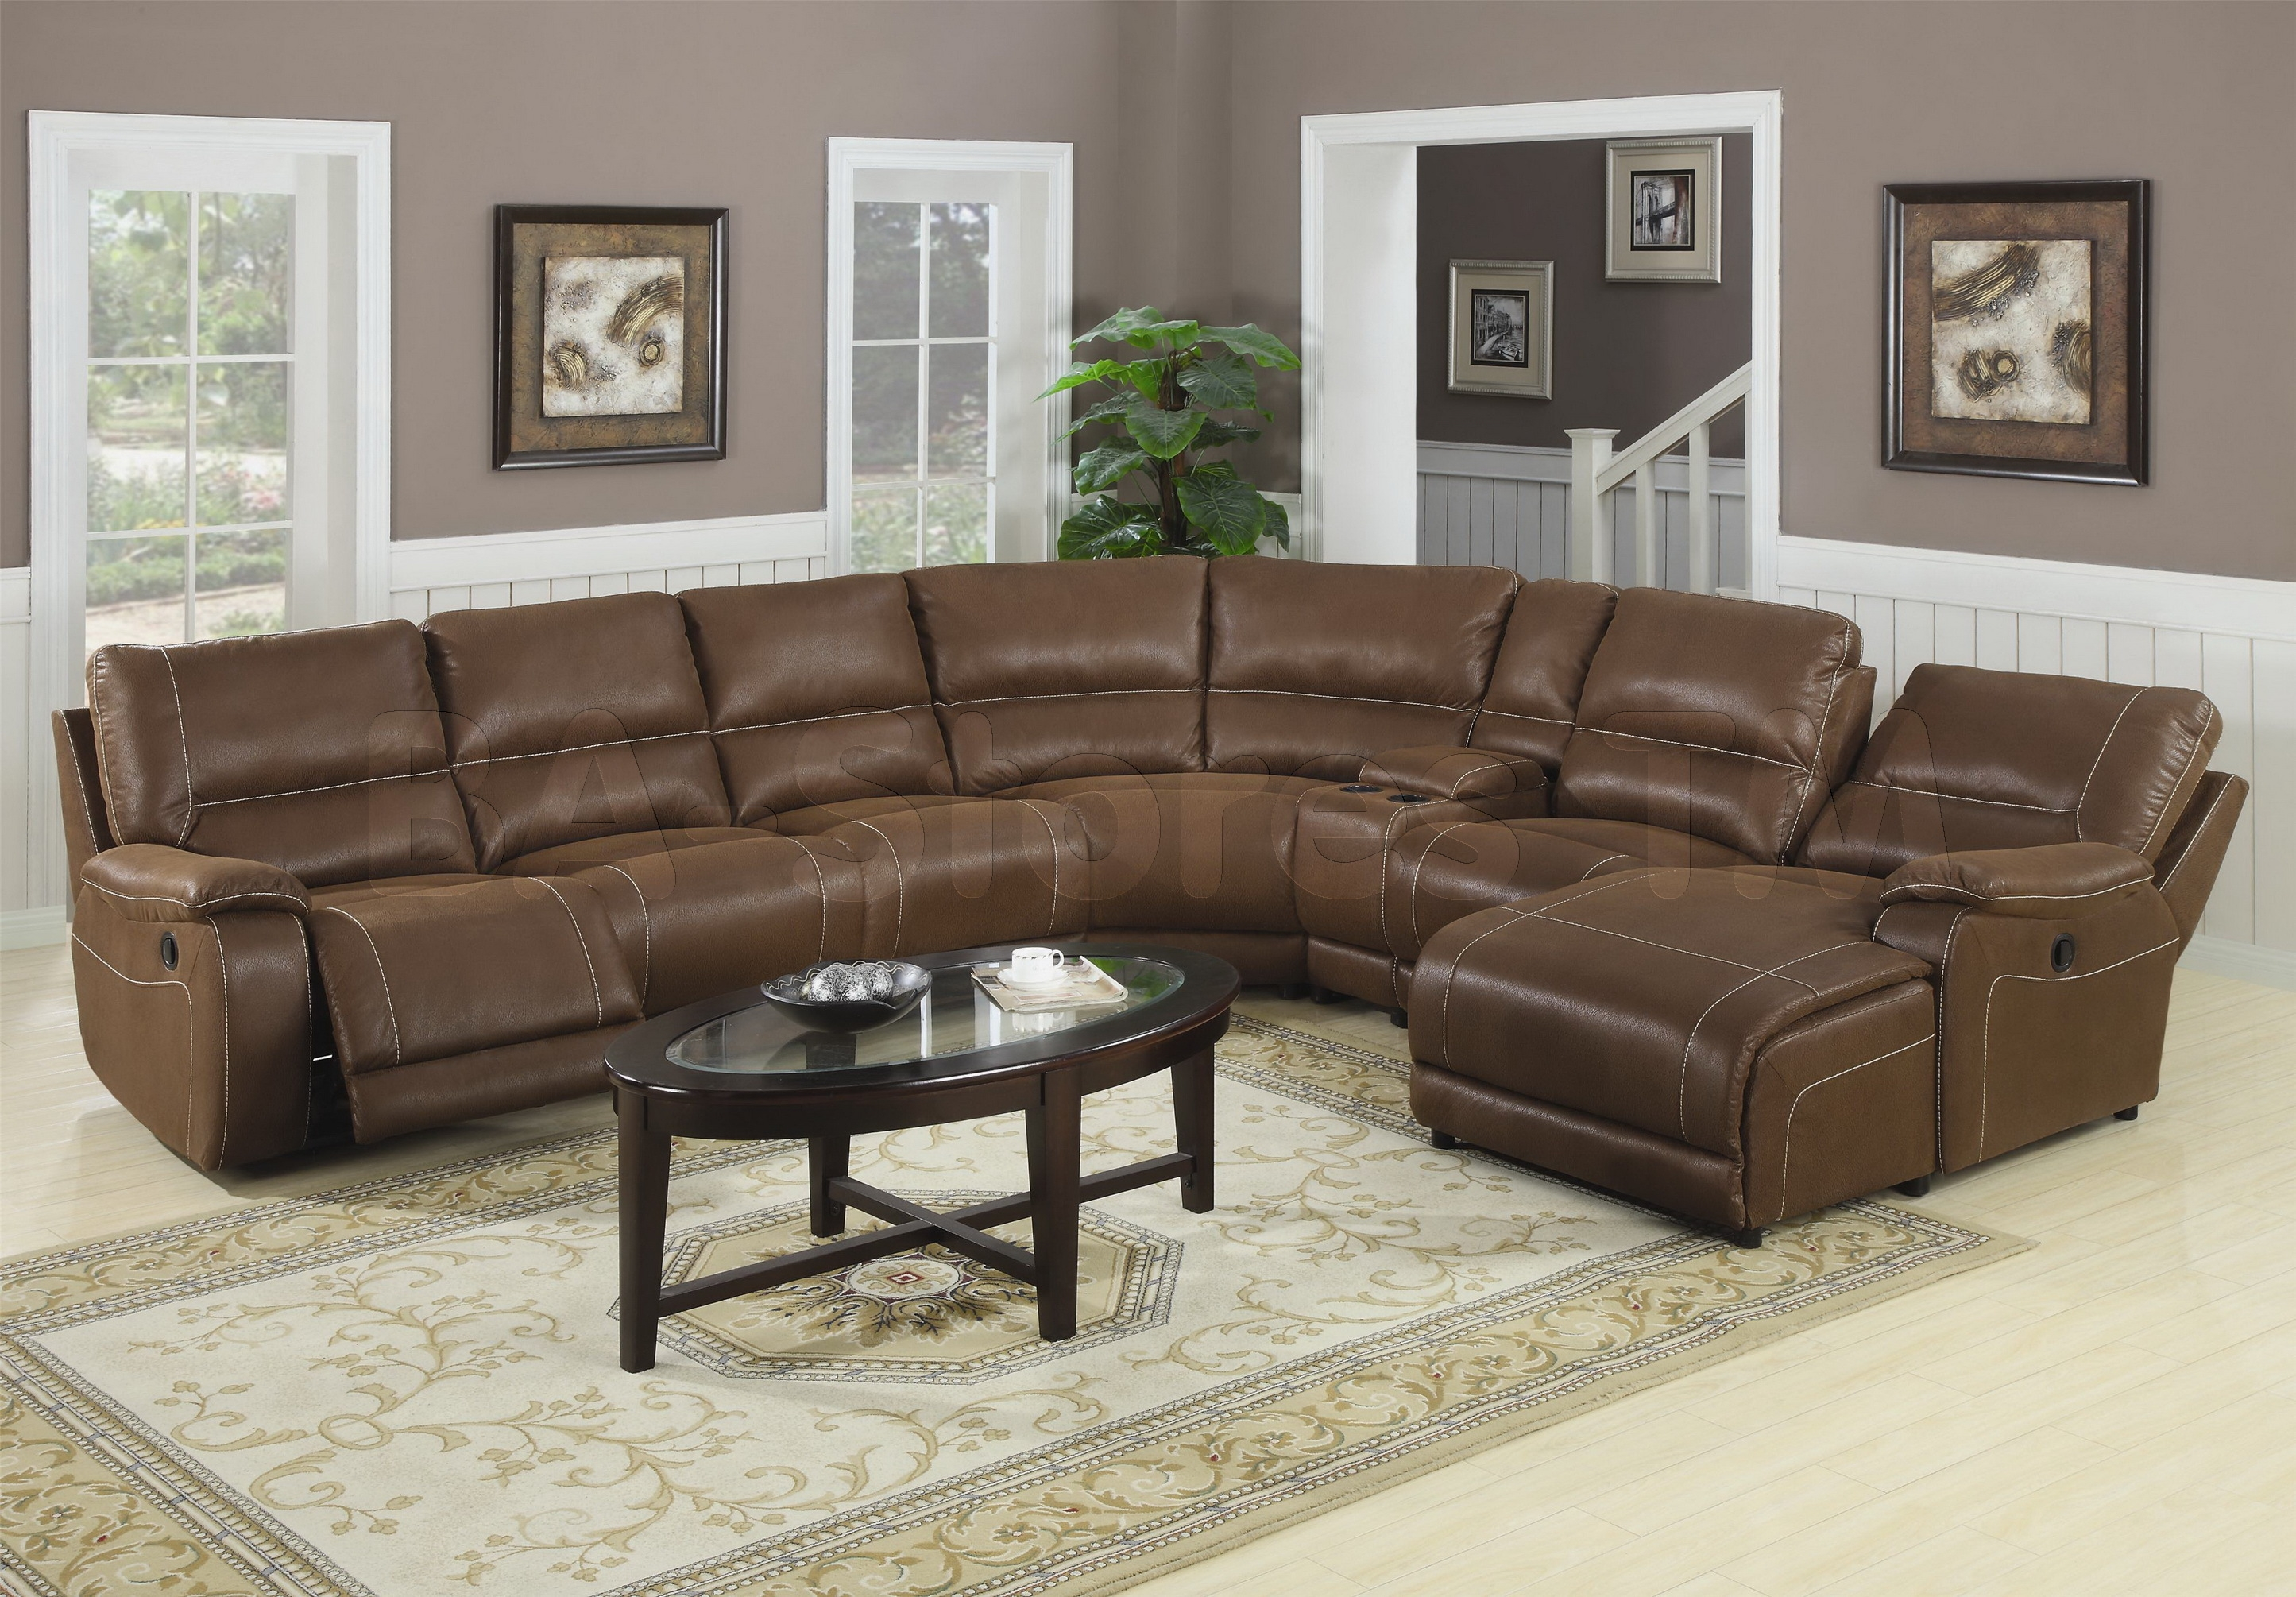 Interior Luxury Oversized Sectional Sofa For Awesome Living Room With Regard To Extra Large Sectional Sofas (#9 of 12)